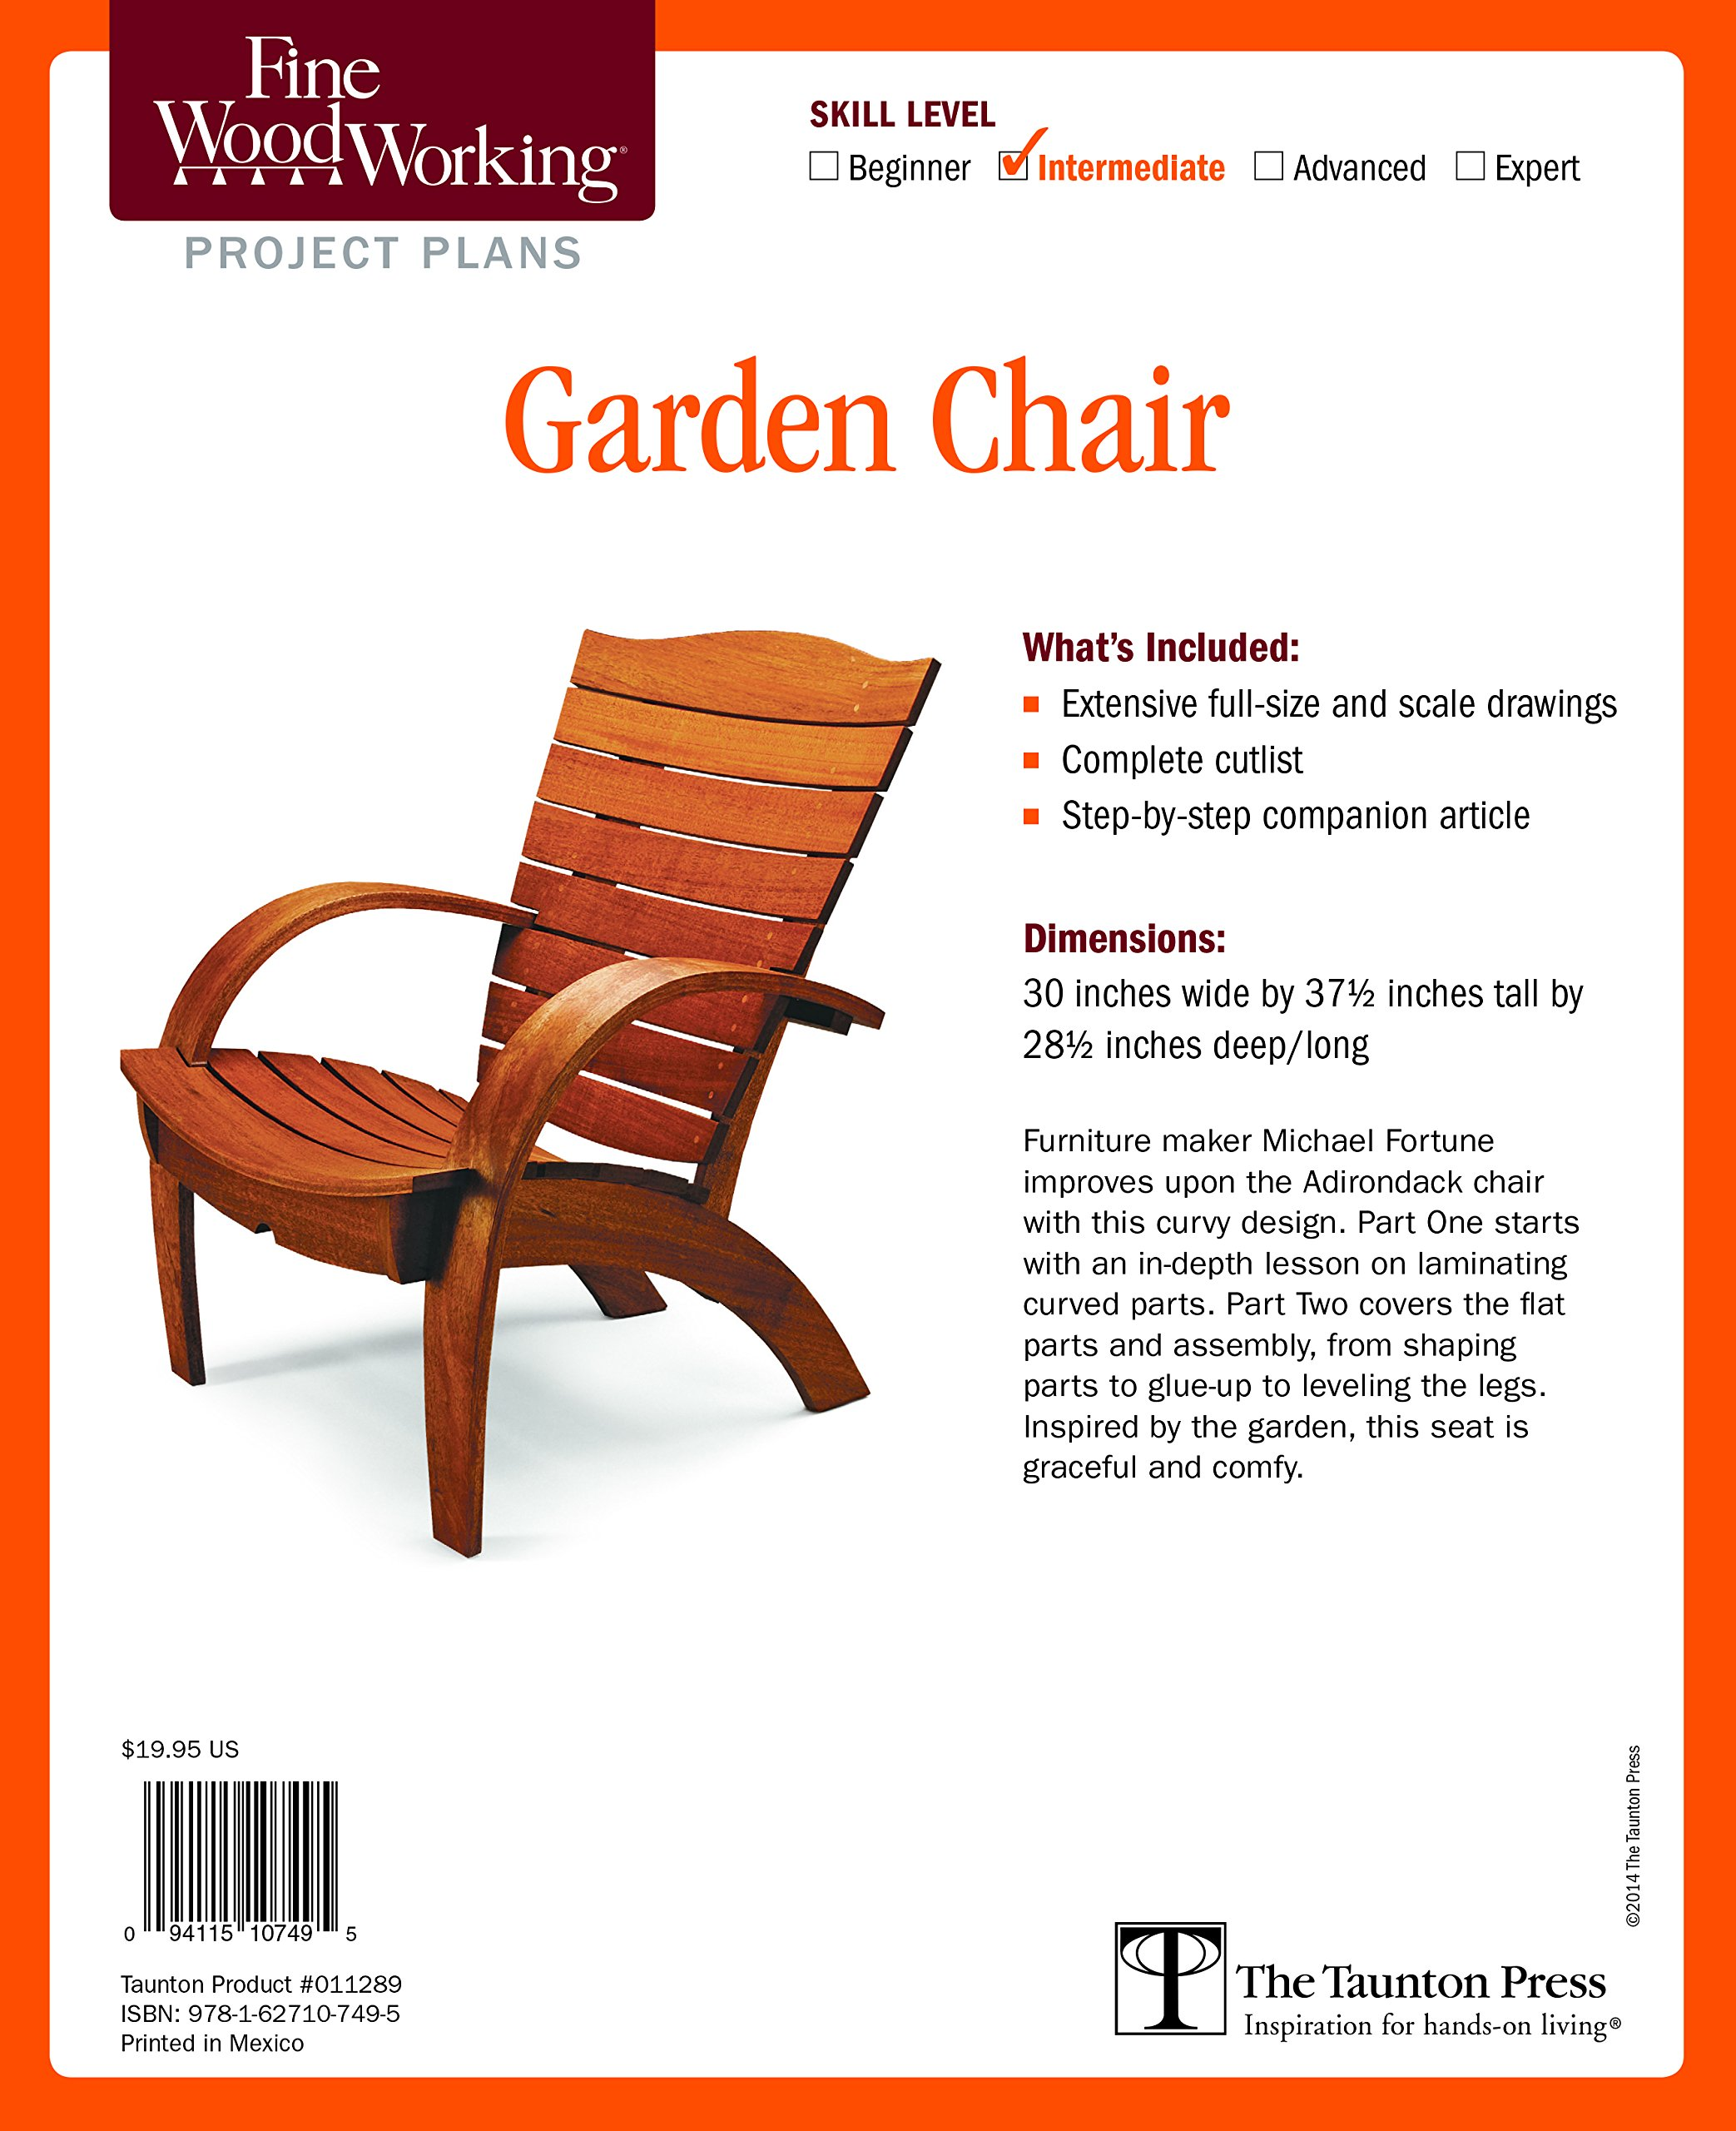 Fine Woodworking's Garden Chair Plan